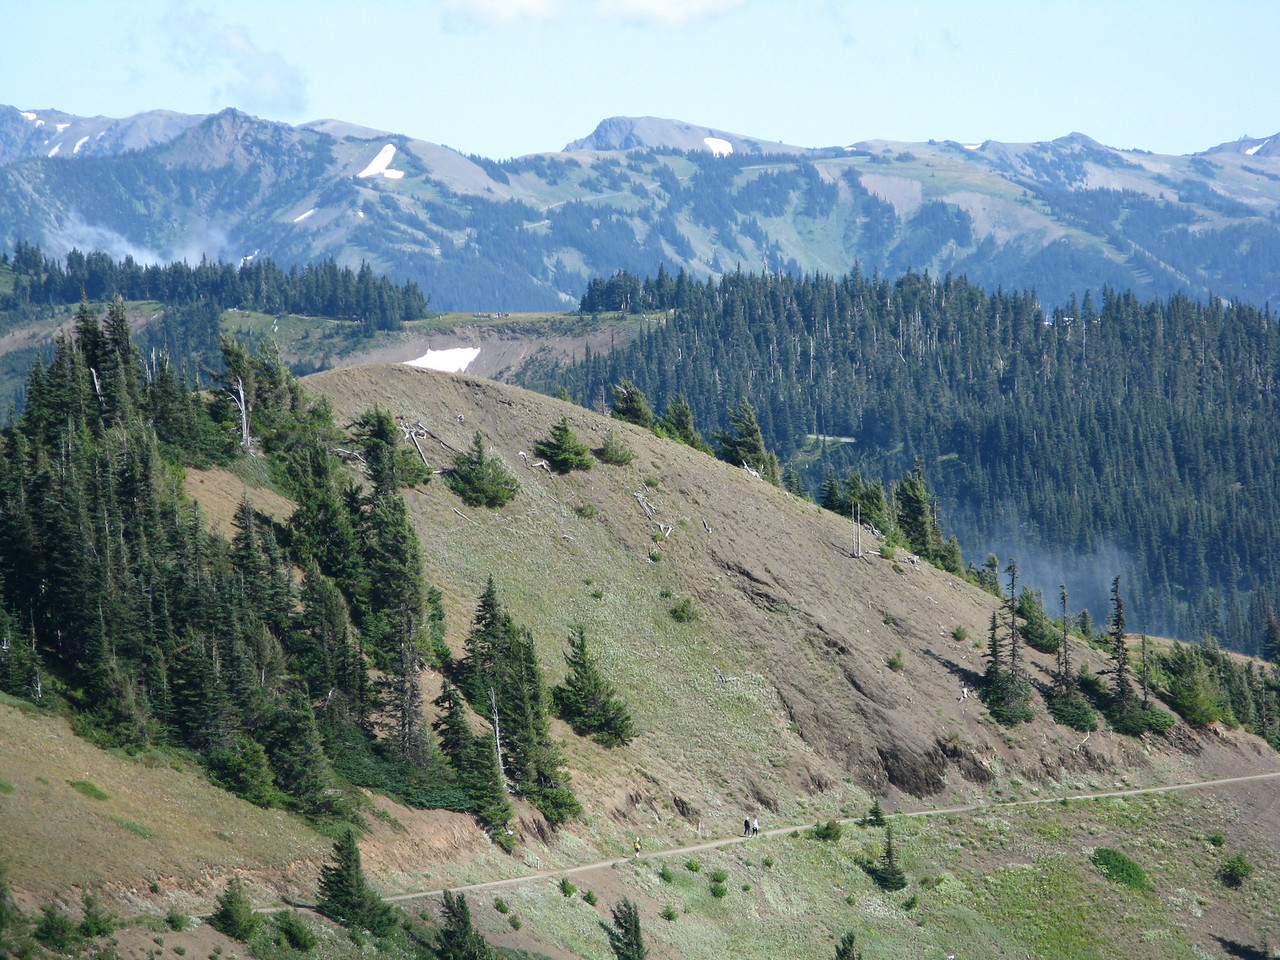 Another view of the trail on the way back.